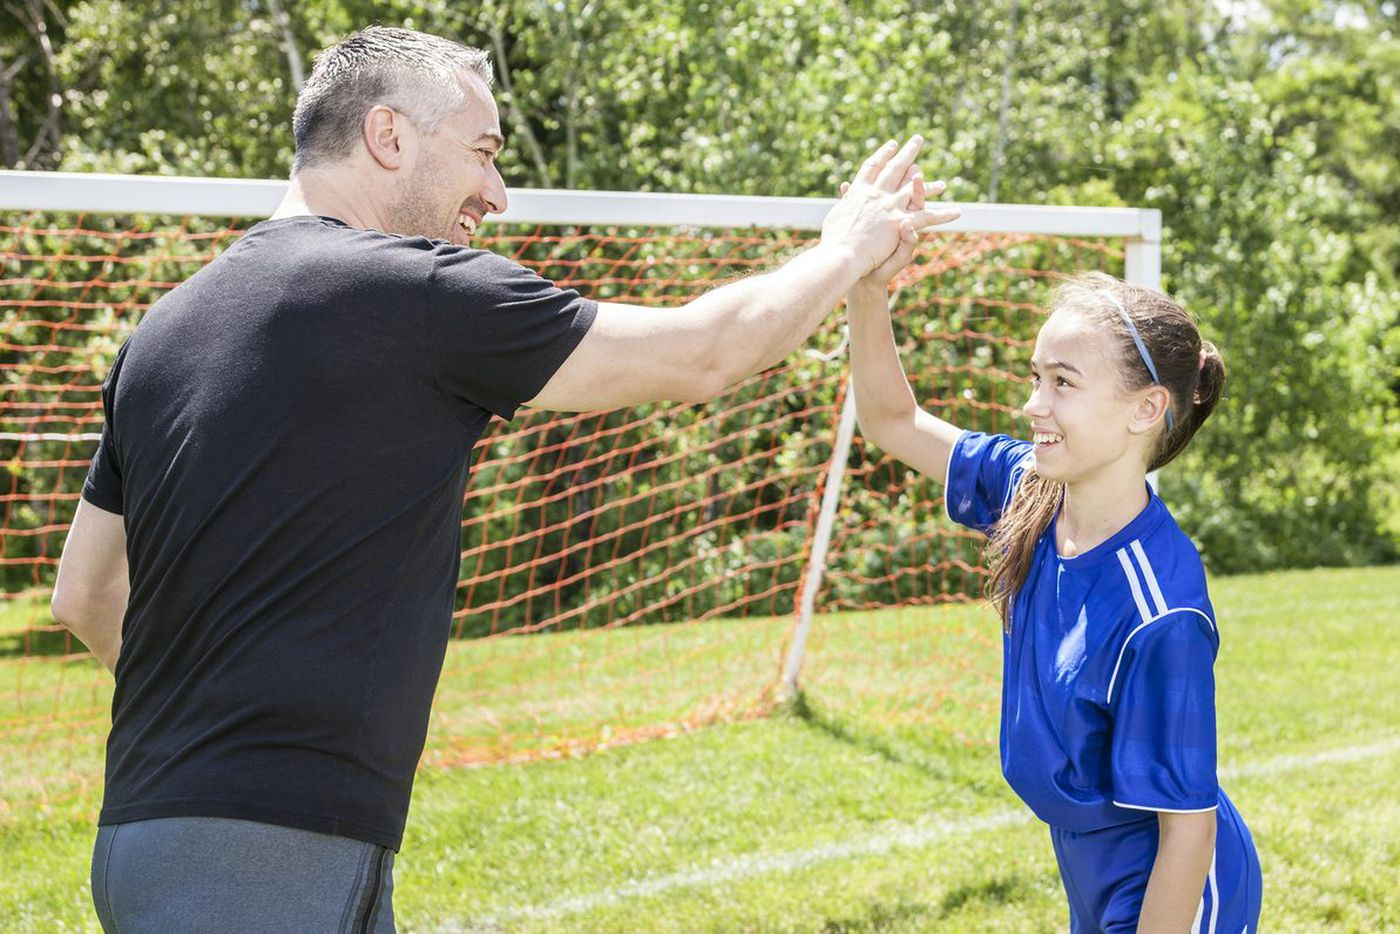 Do the benefits of youth sports outweigh the risks?